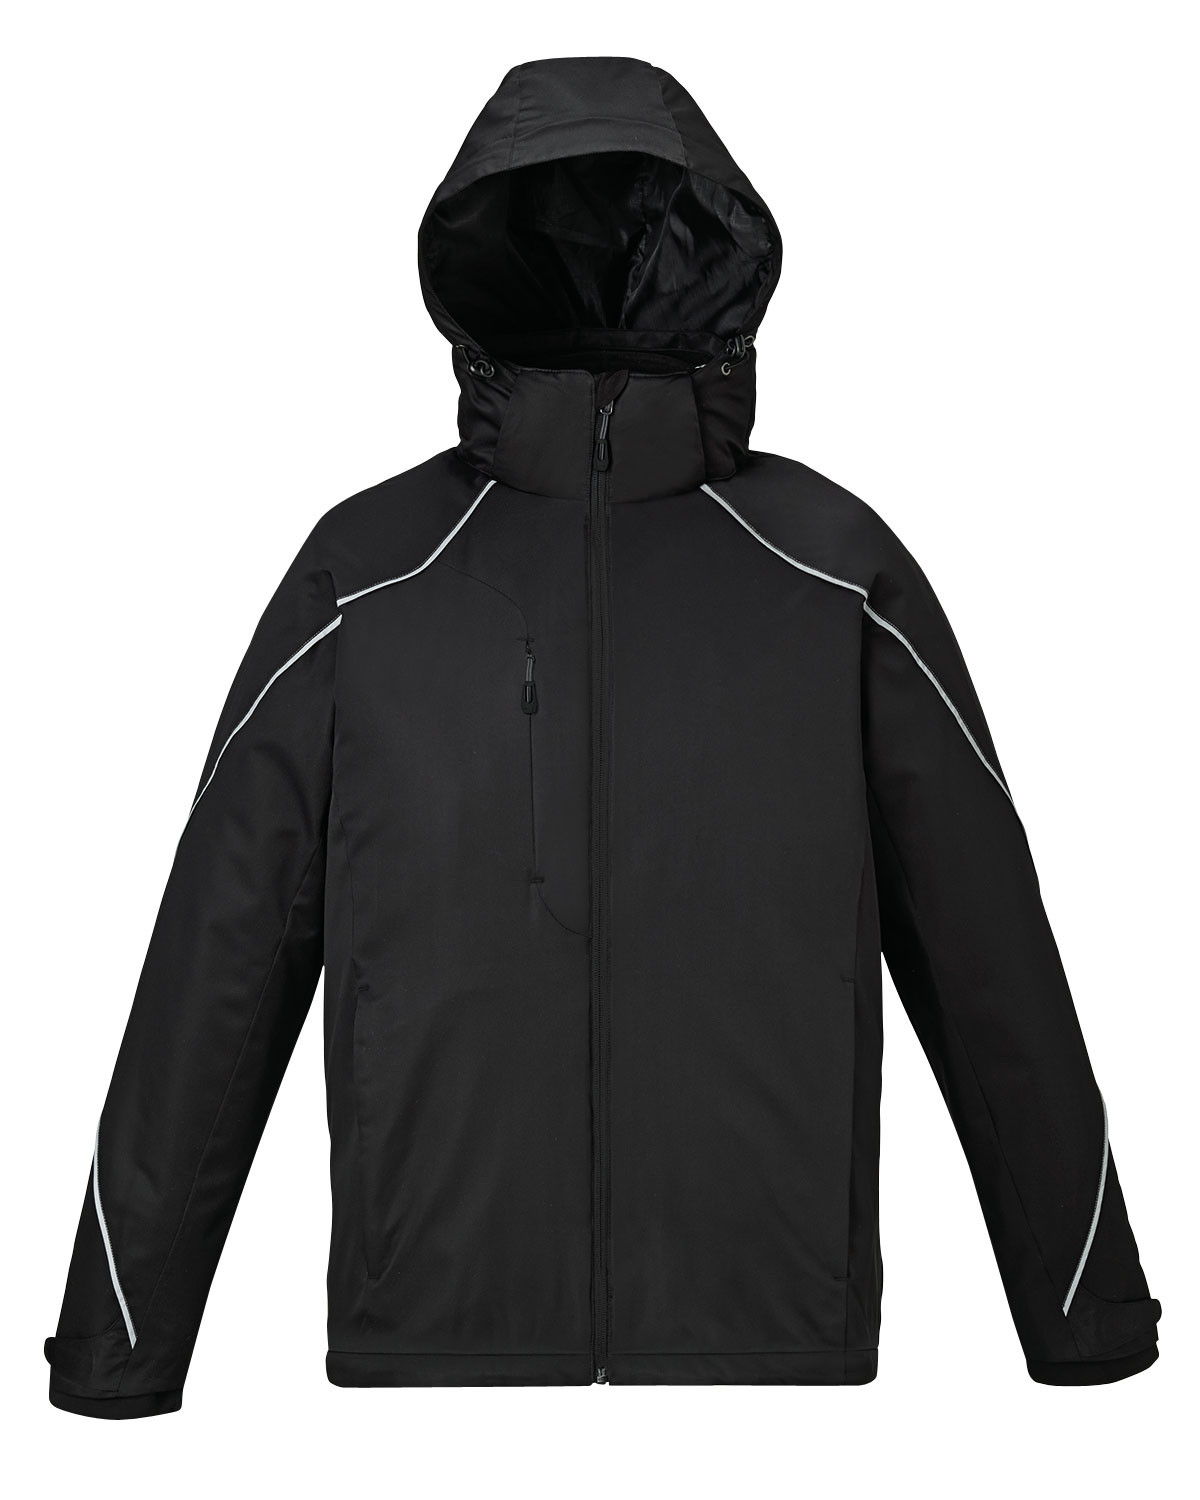 Ash City System Jackets 88196 - Angle Men's 3-In-1 Jacket With With Bonded Fleece Liner